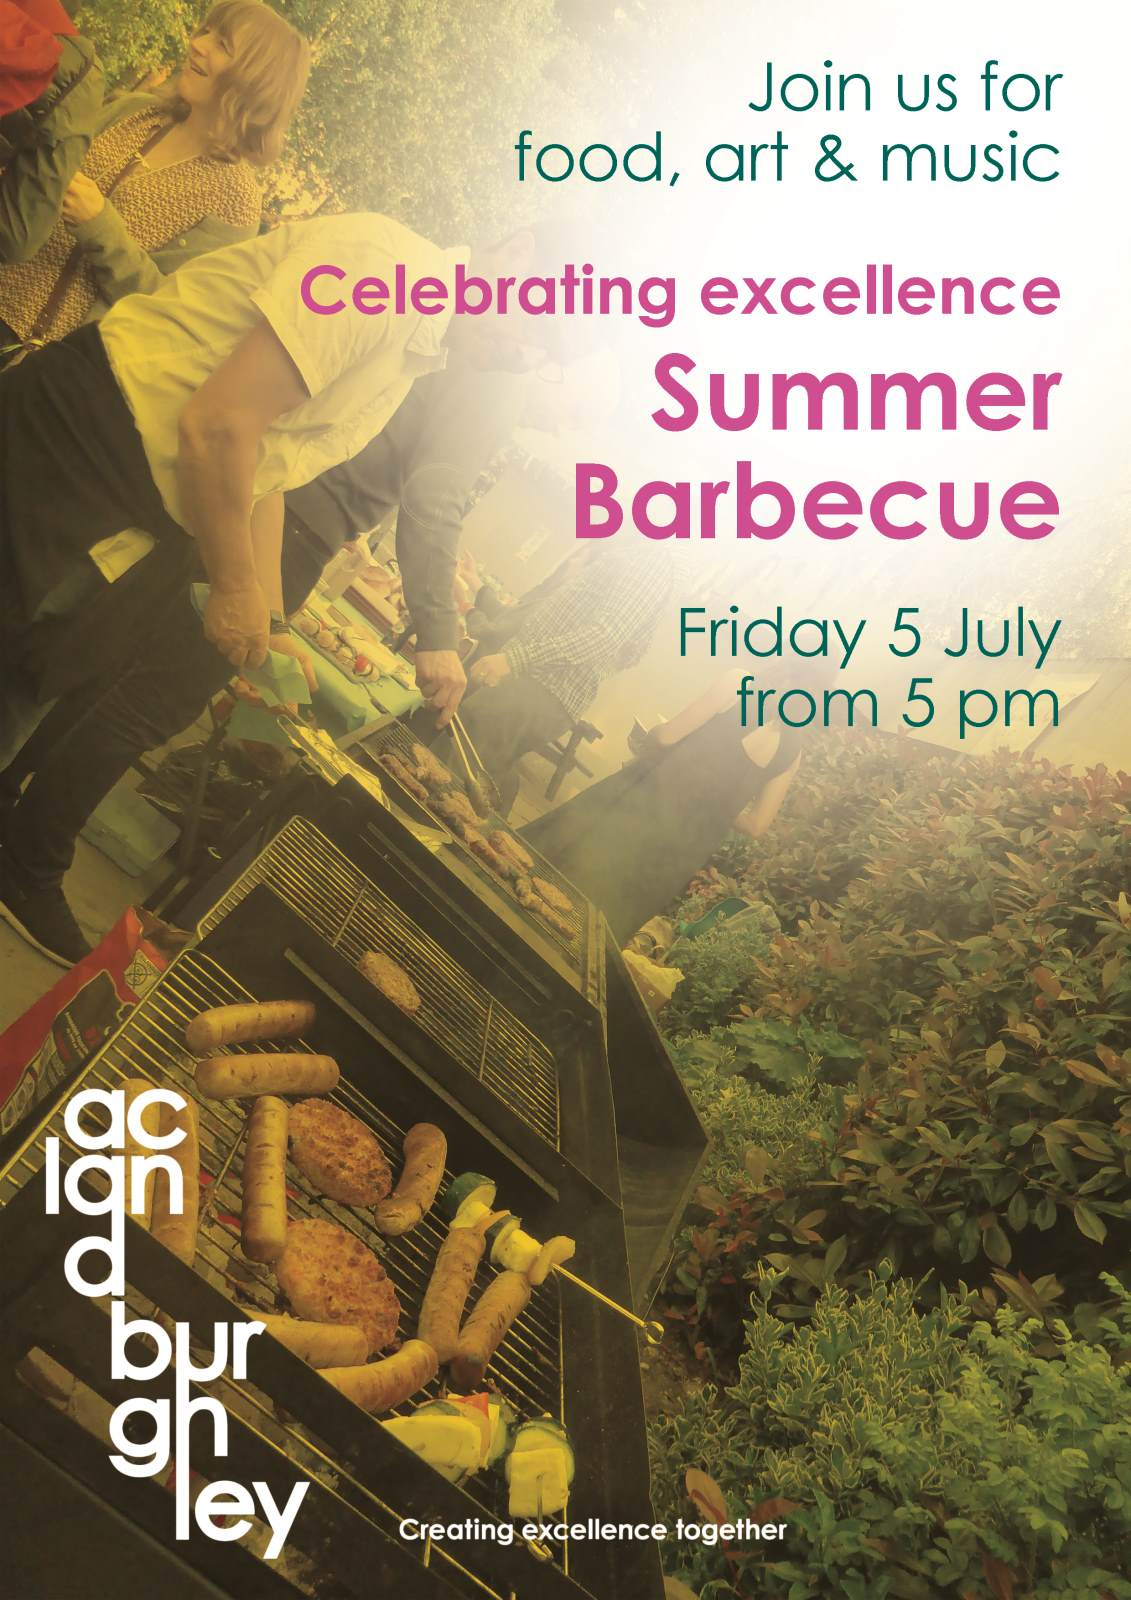 Celebrating excellence Summer Barbecue